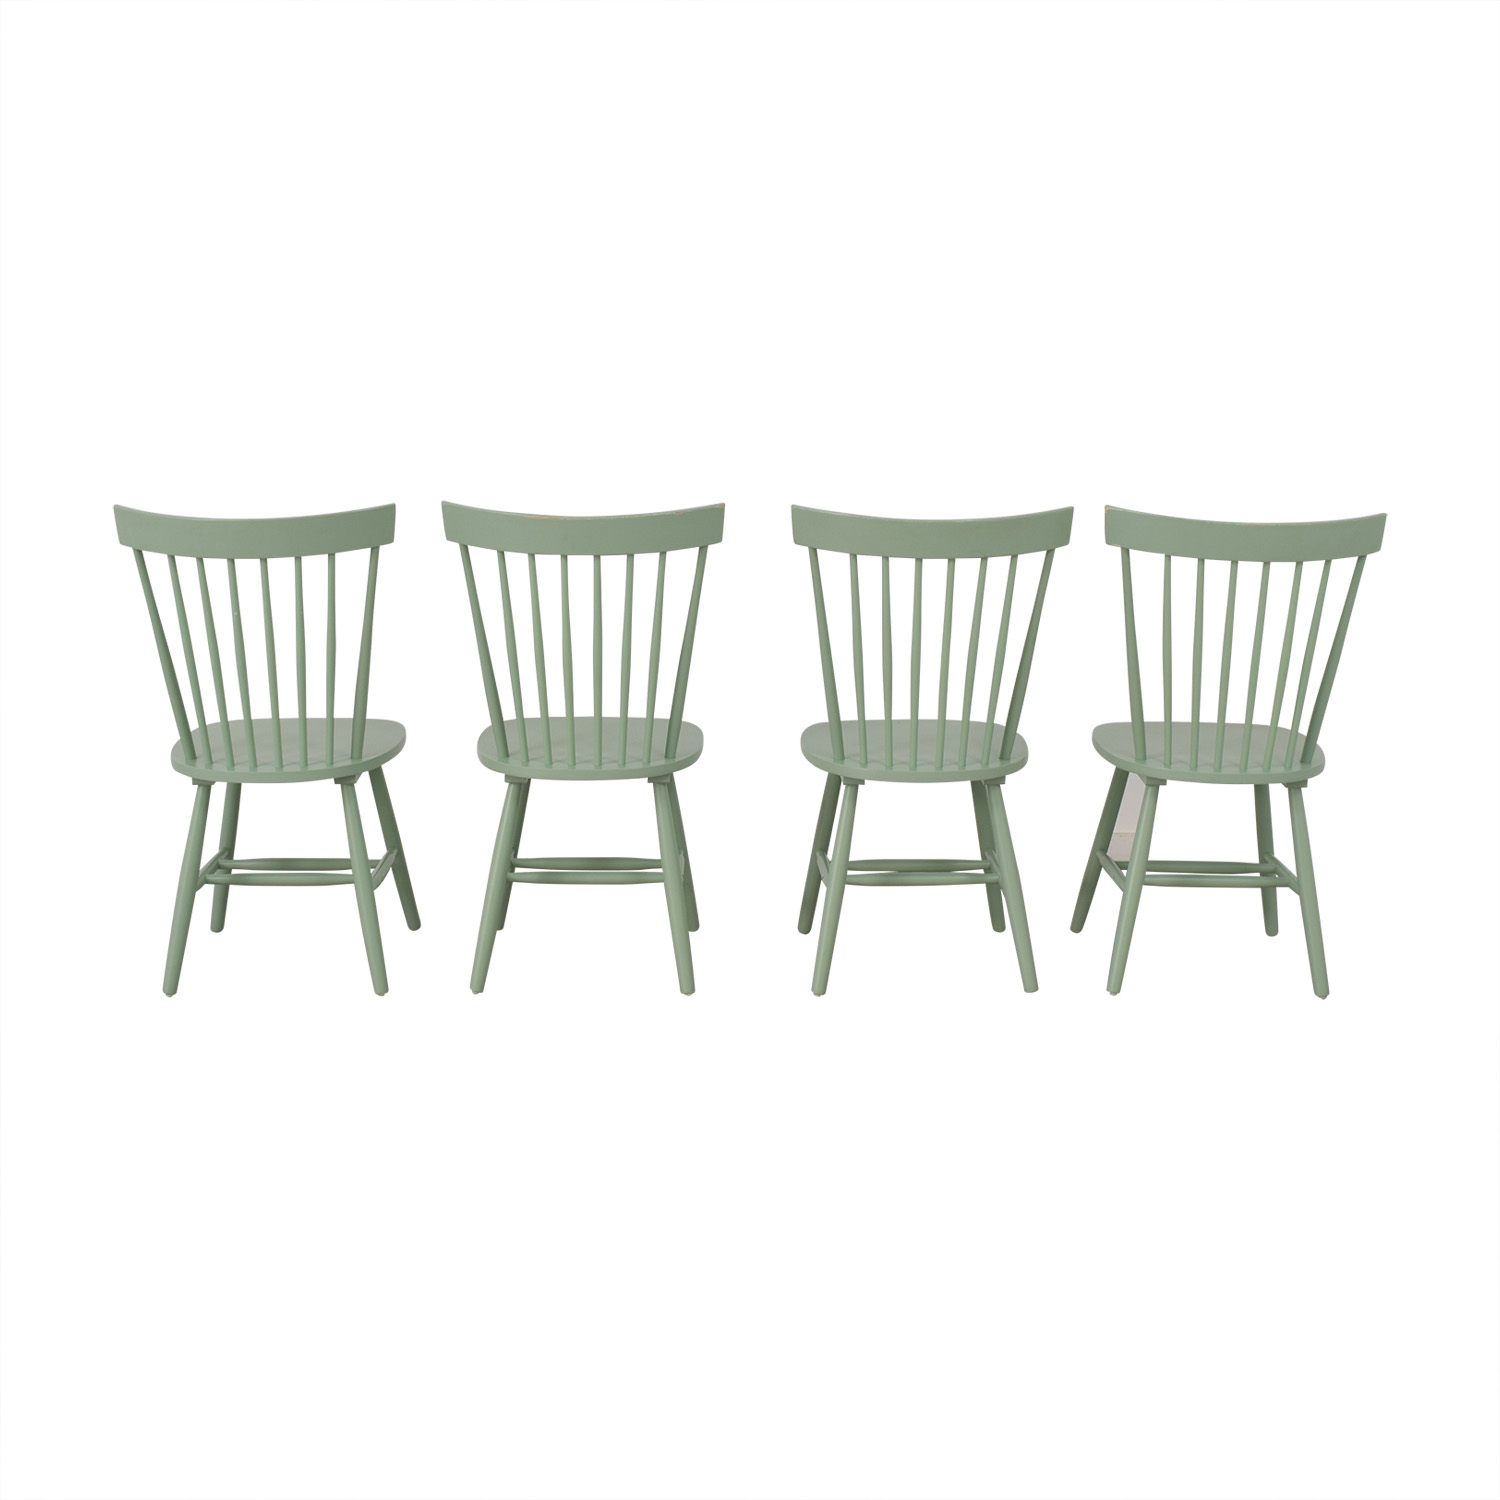 Wayfair Wayfair Green Dining Chairs dimensions